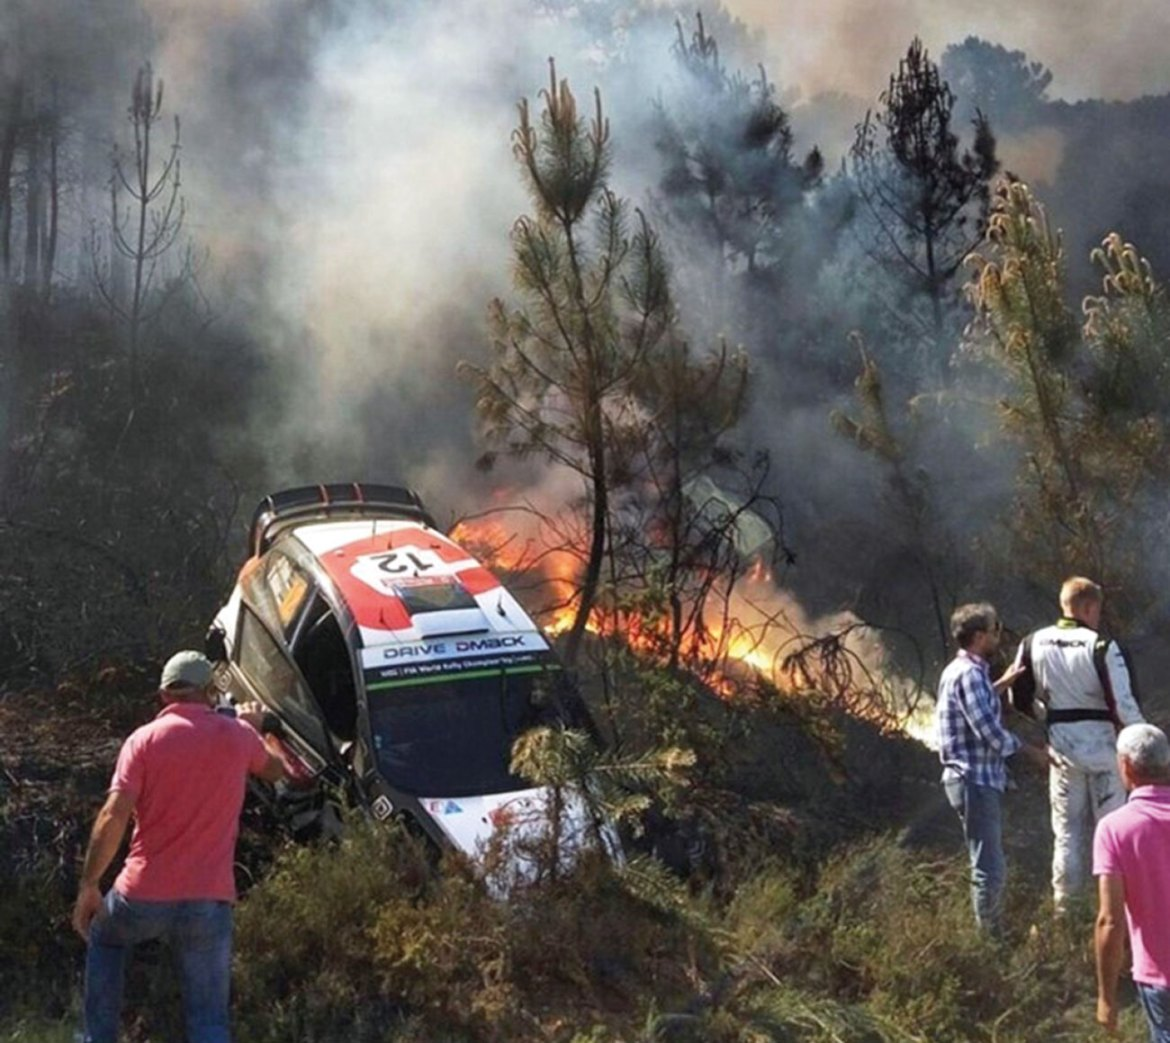 Post crash fire at a WRC event. Even without technology concerns, depending upon the type of motorsports, hazards can be significant if not addressed properly.